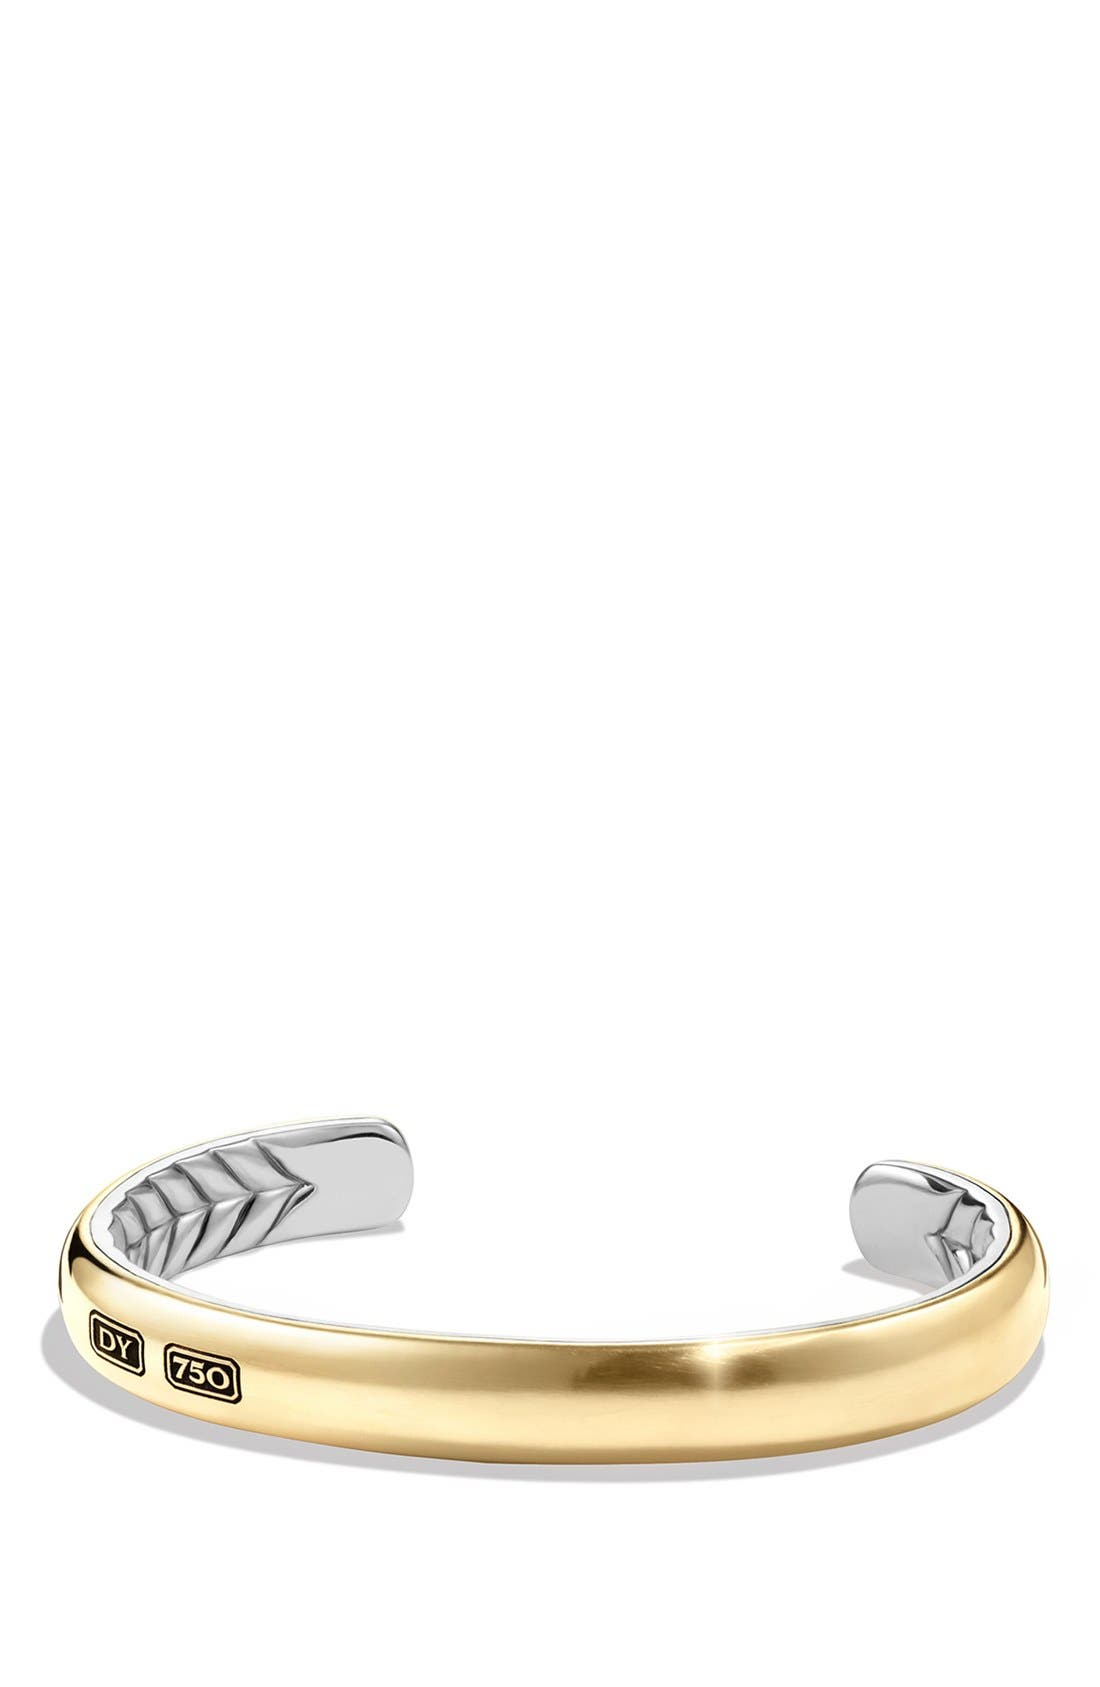 'Streamline' Cuff Bracelet with 18K Gold,                             Main thumbnail 1, color,                             040